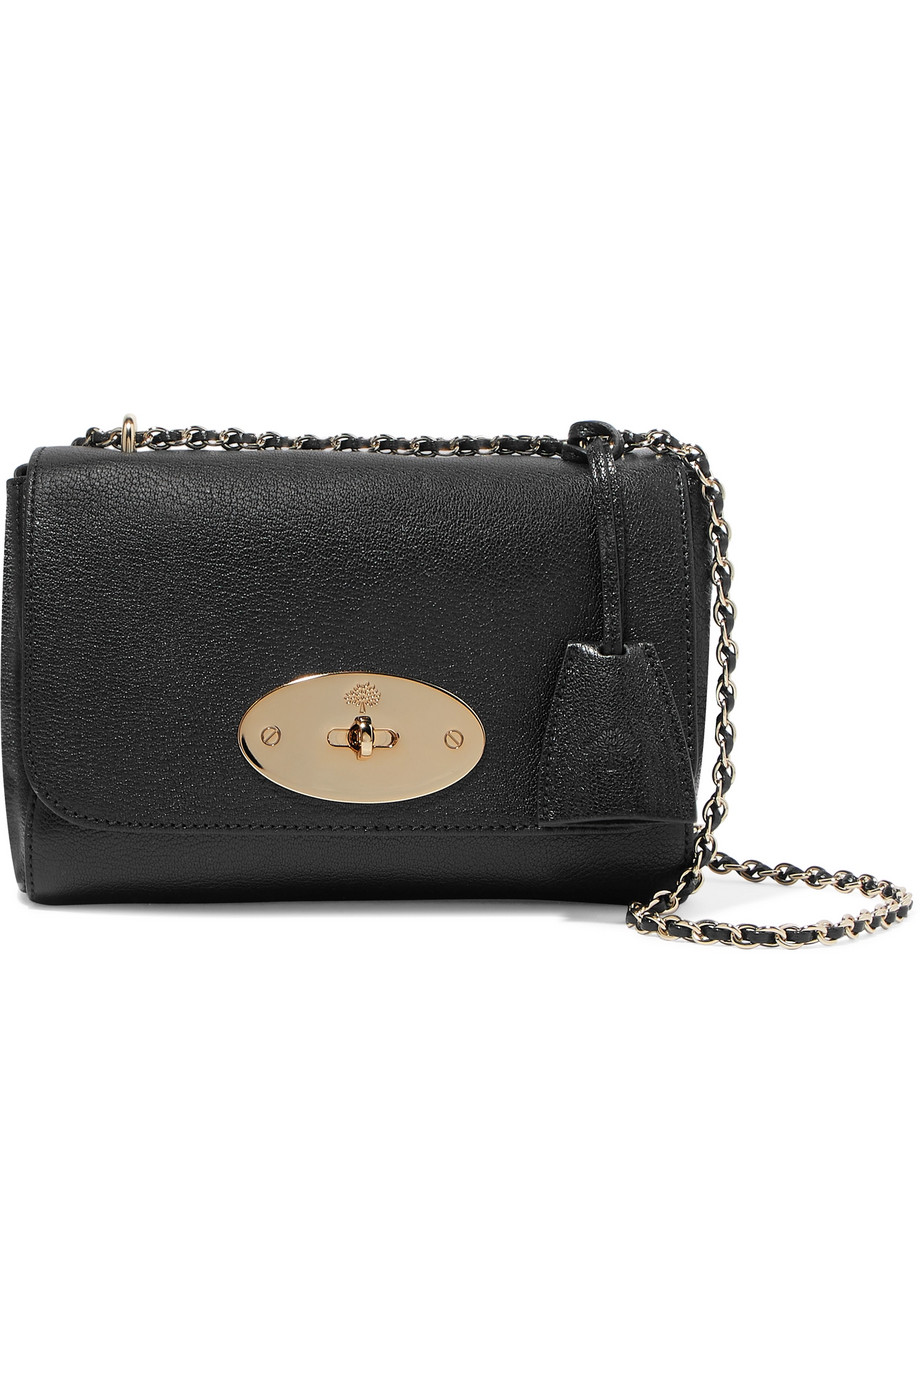 Mulberry Gracie Small Leather Shoulder Bag 71